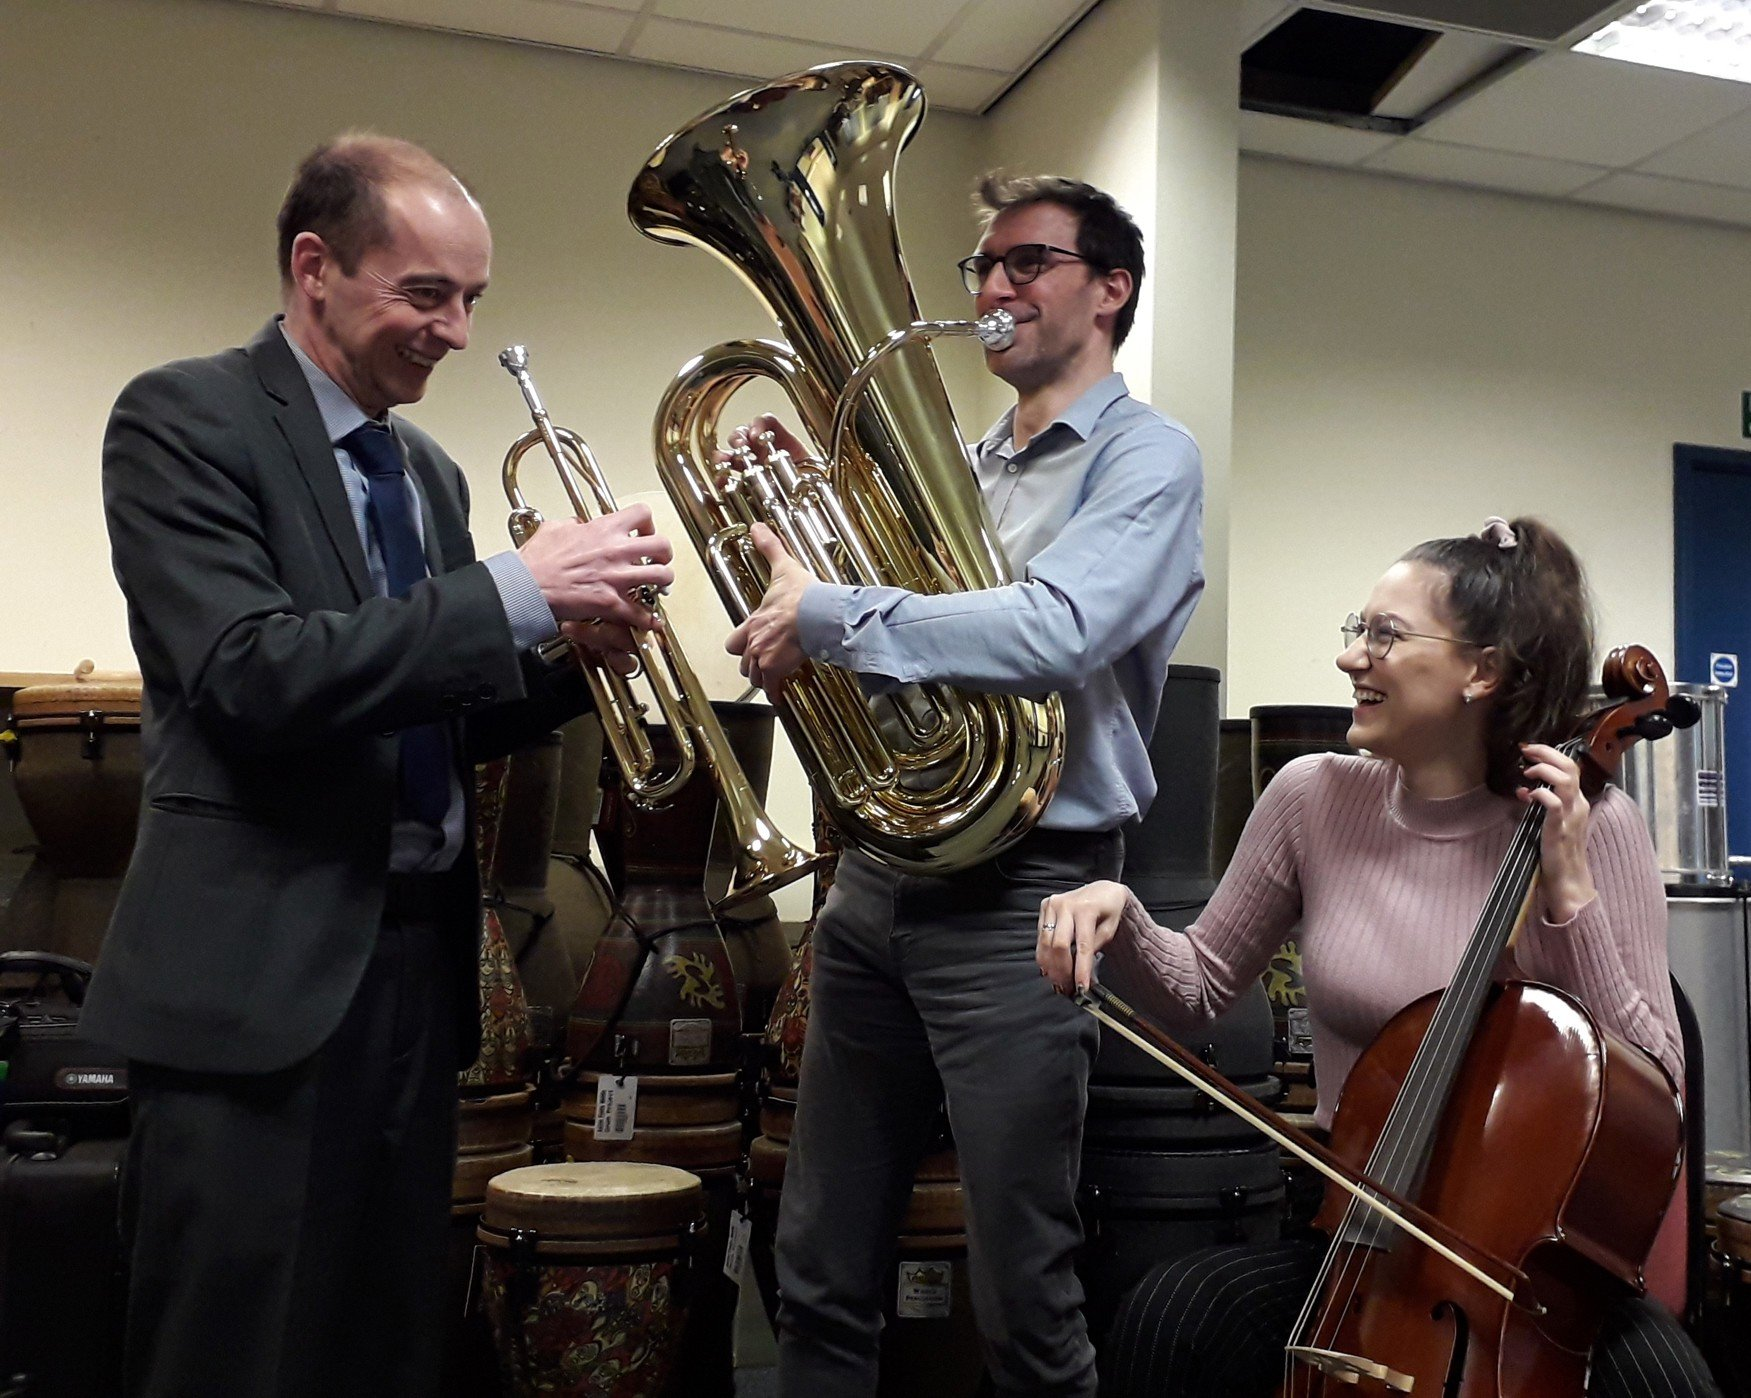 three members of Severn Arts team trying instruments - trumpet, tuba and cello